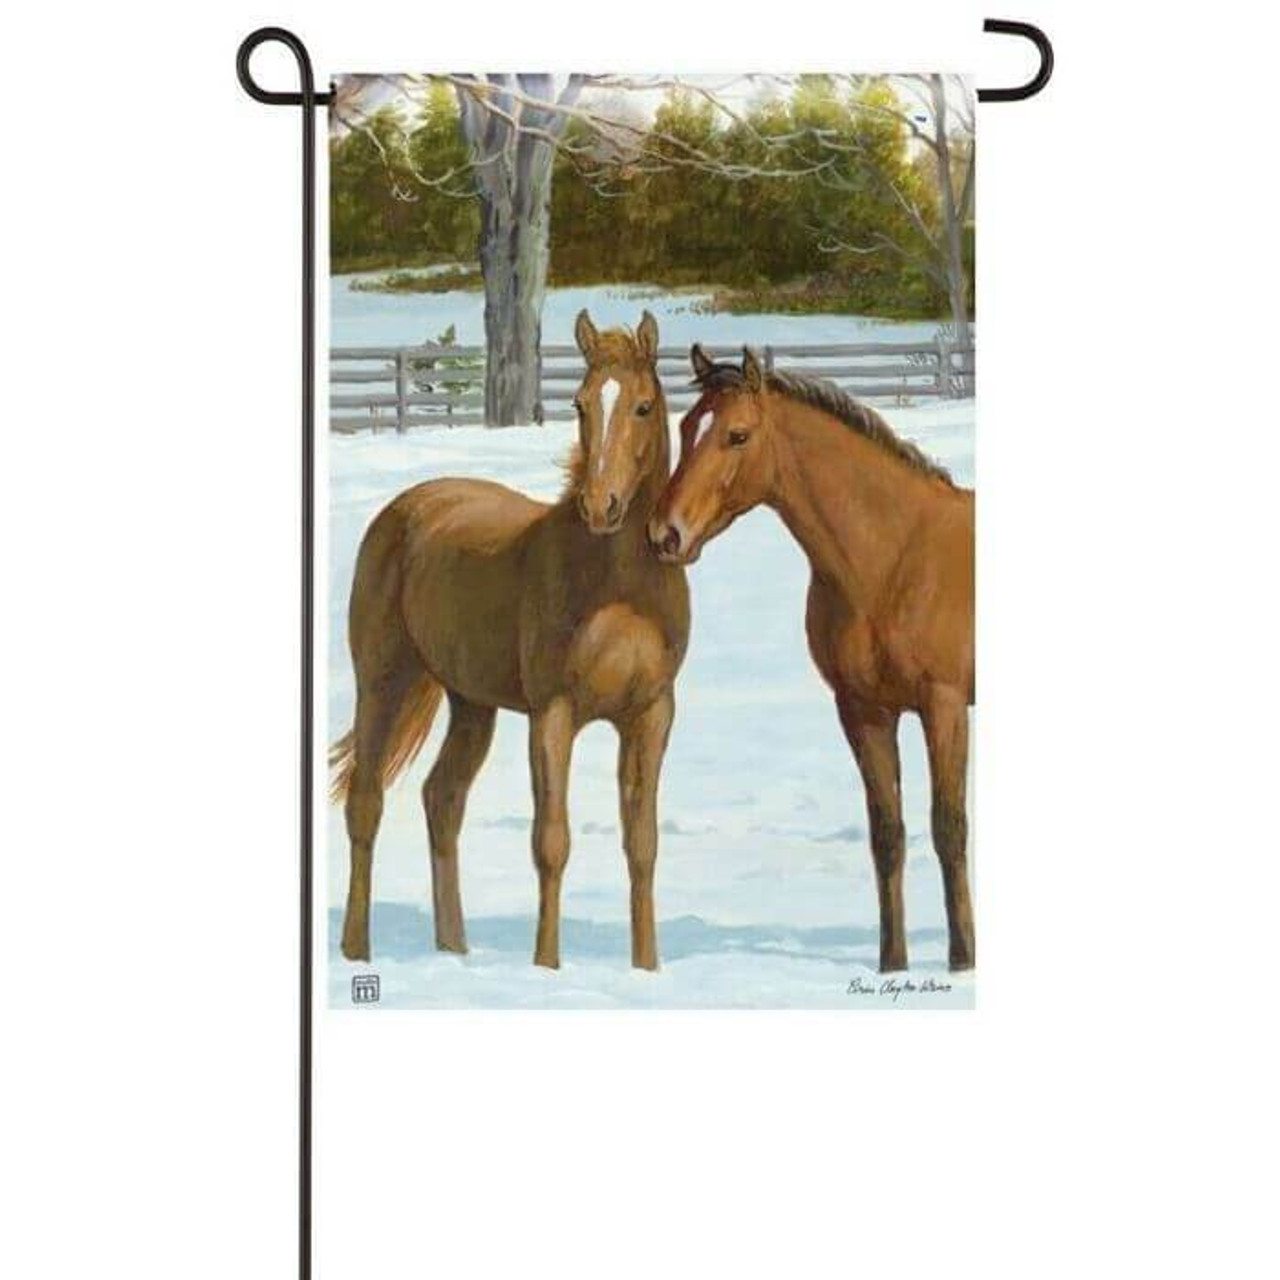 This garden flag features two chestnut horses snuggling together in a winter landscape.